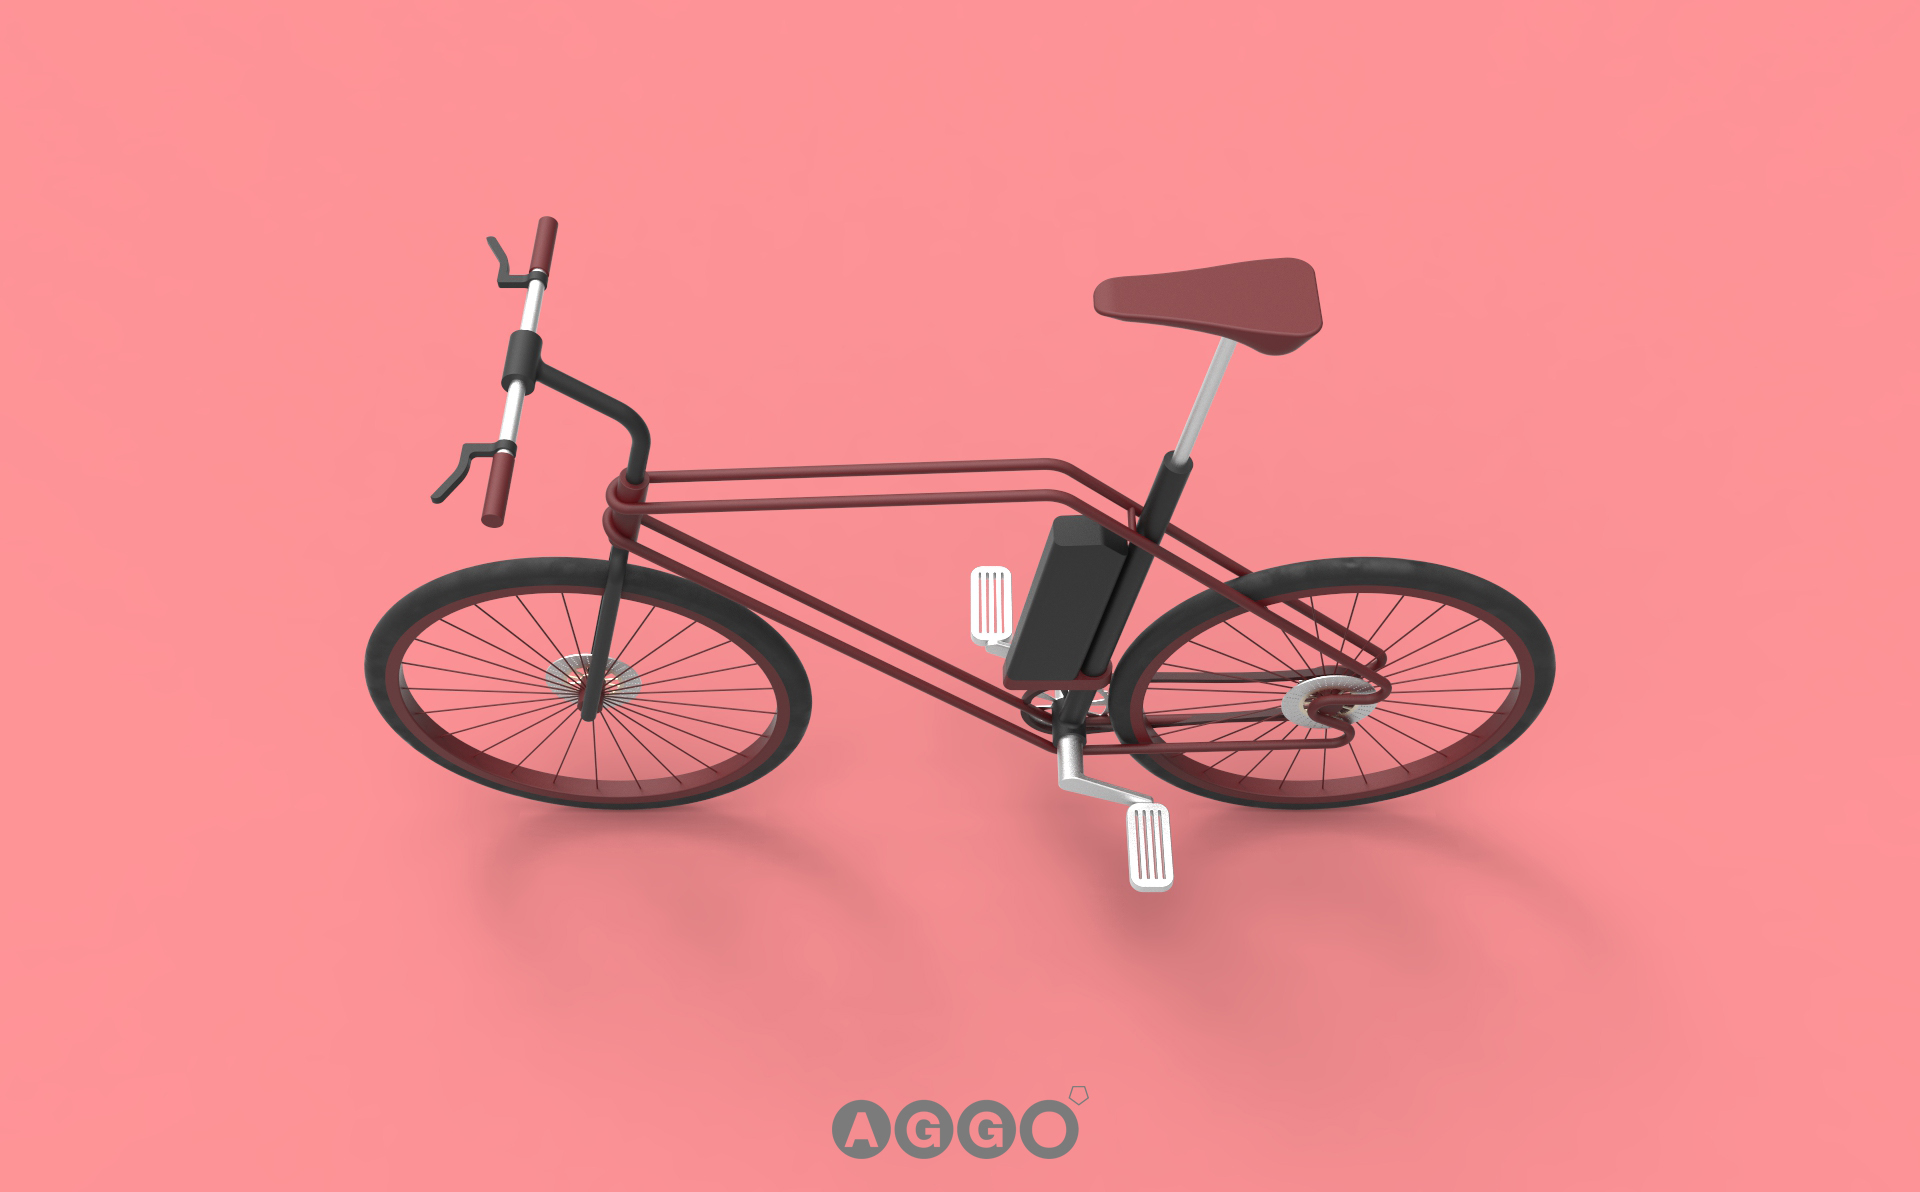 Electric_Bicycle_by_Aggo_006.jpg